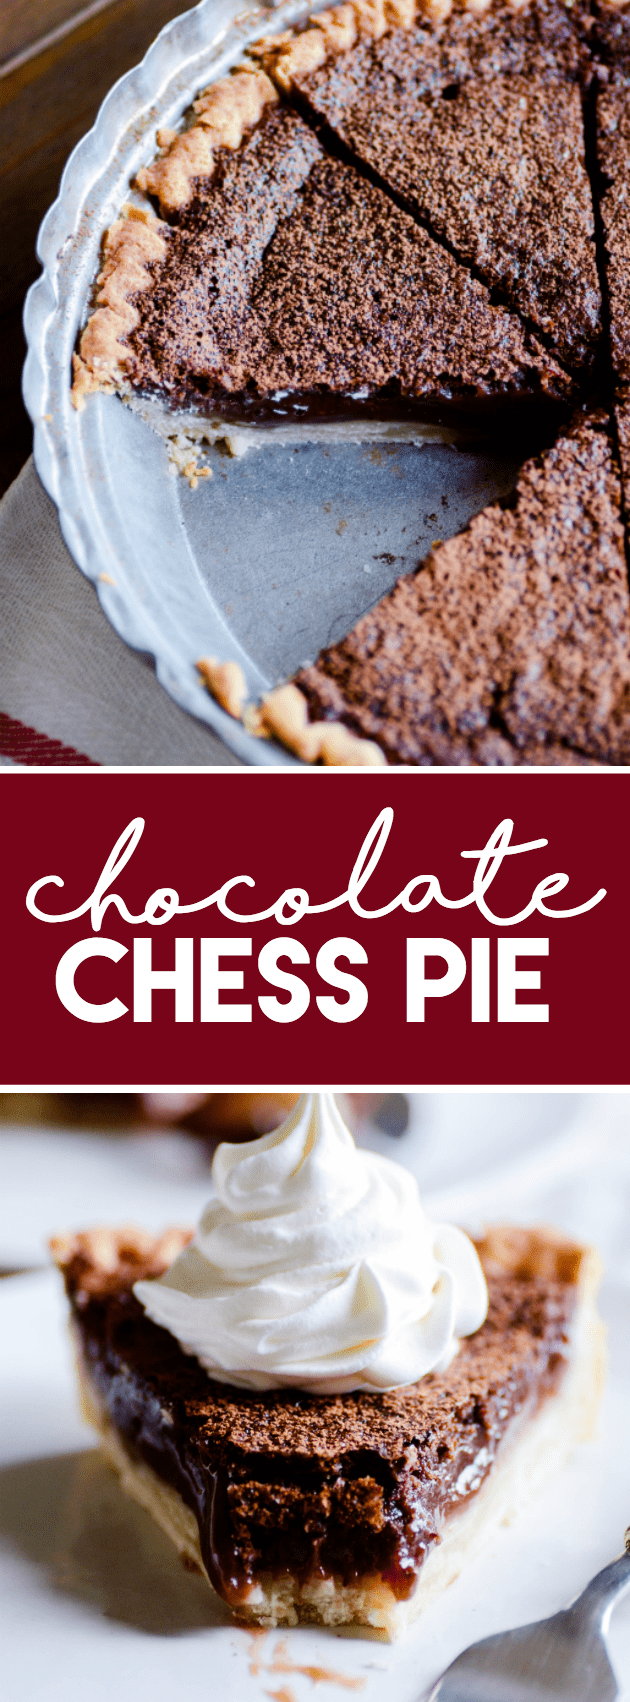 Decadent and delicious classic chocolate chess pie. This pie is a Southern staple, and it is absolutely incredible!